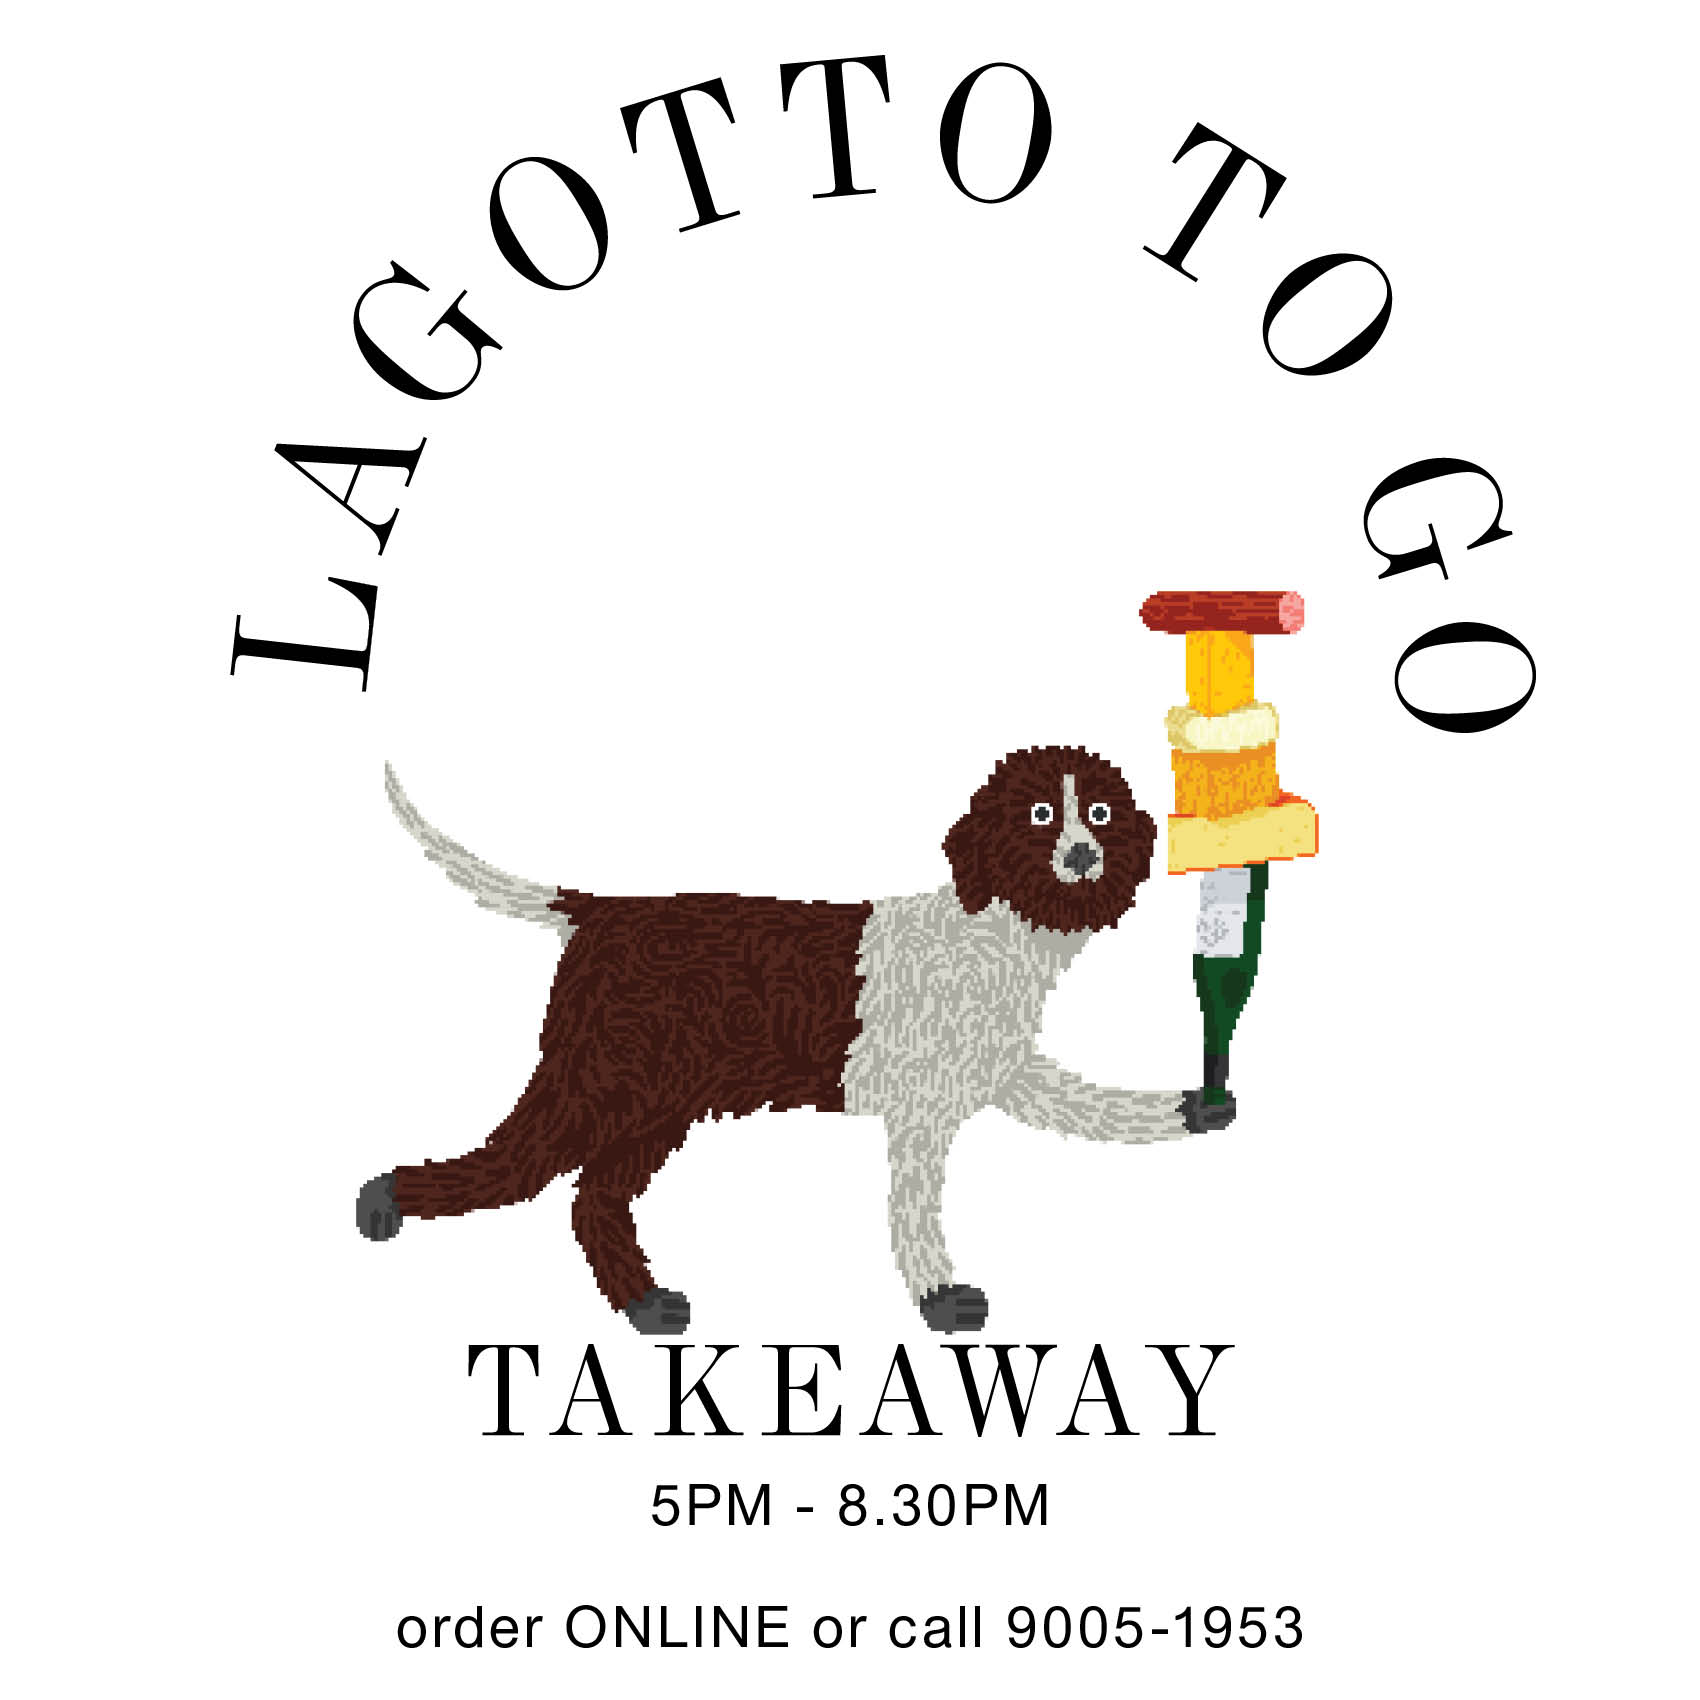 Café Lagotto Announcement!